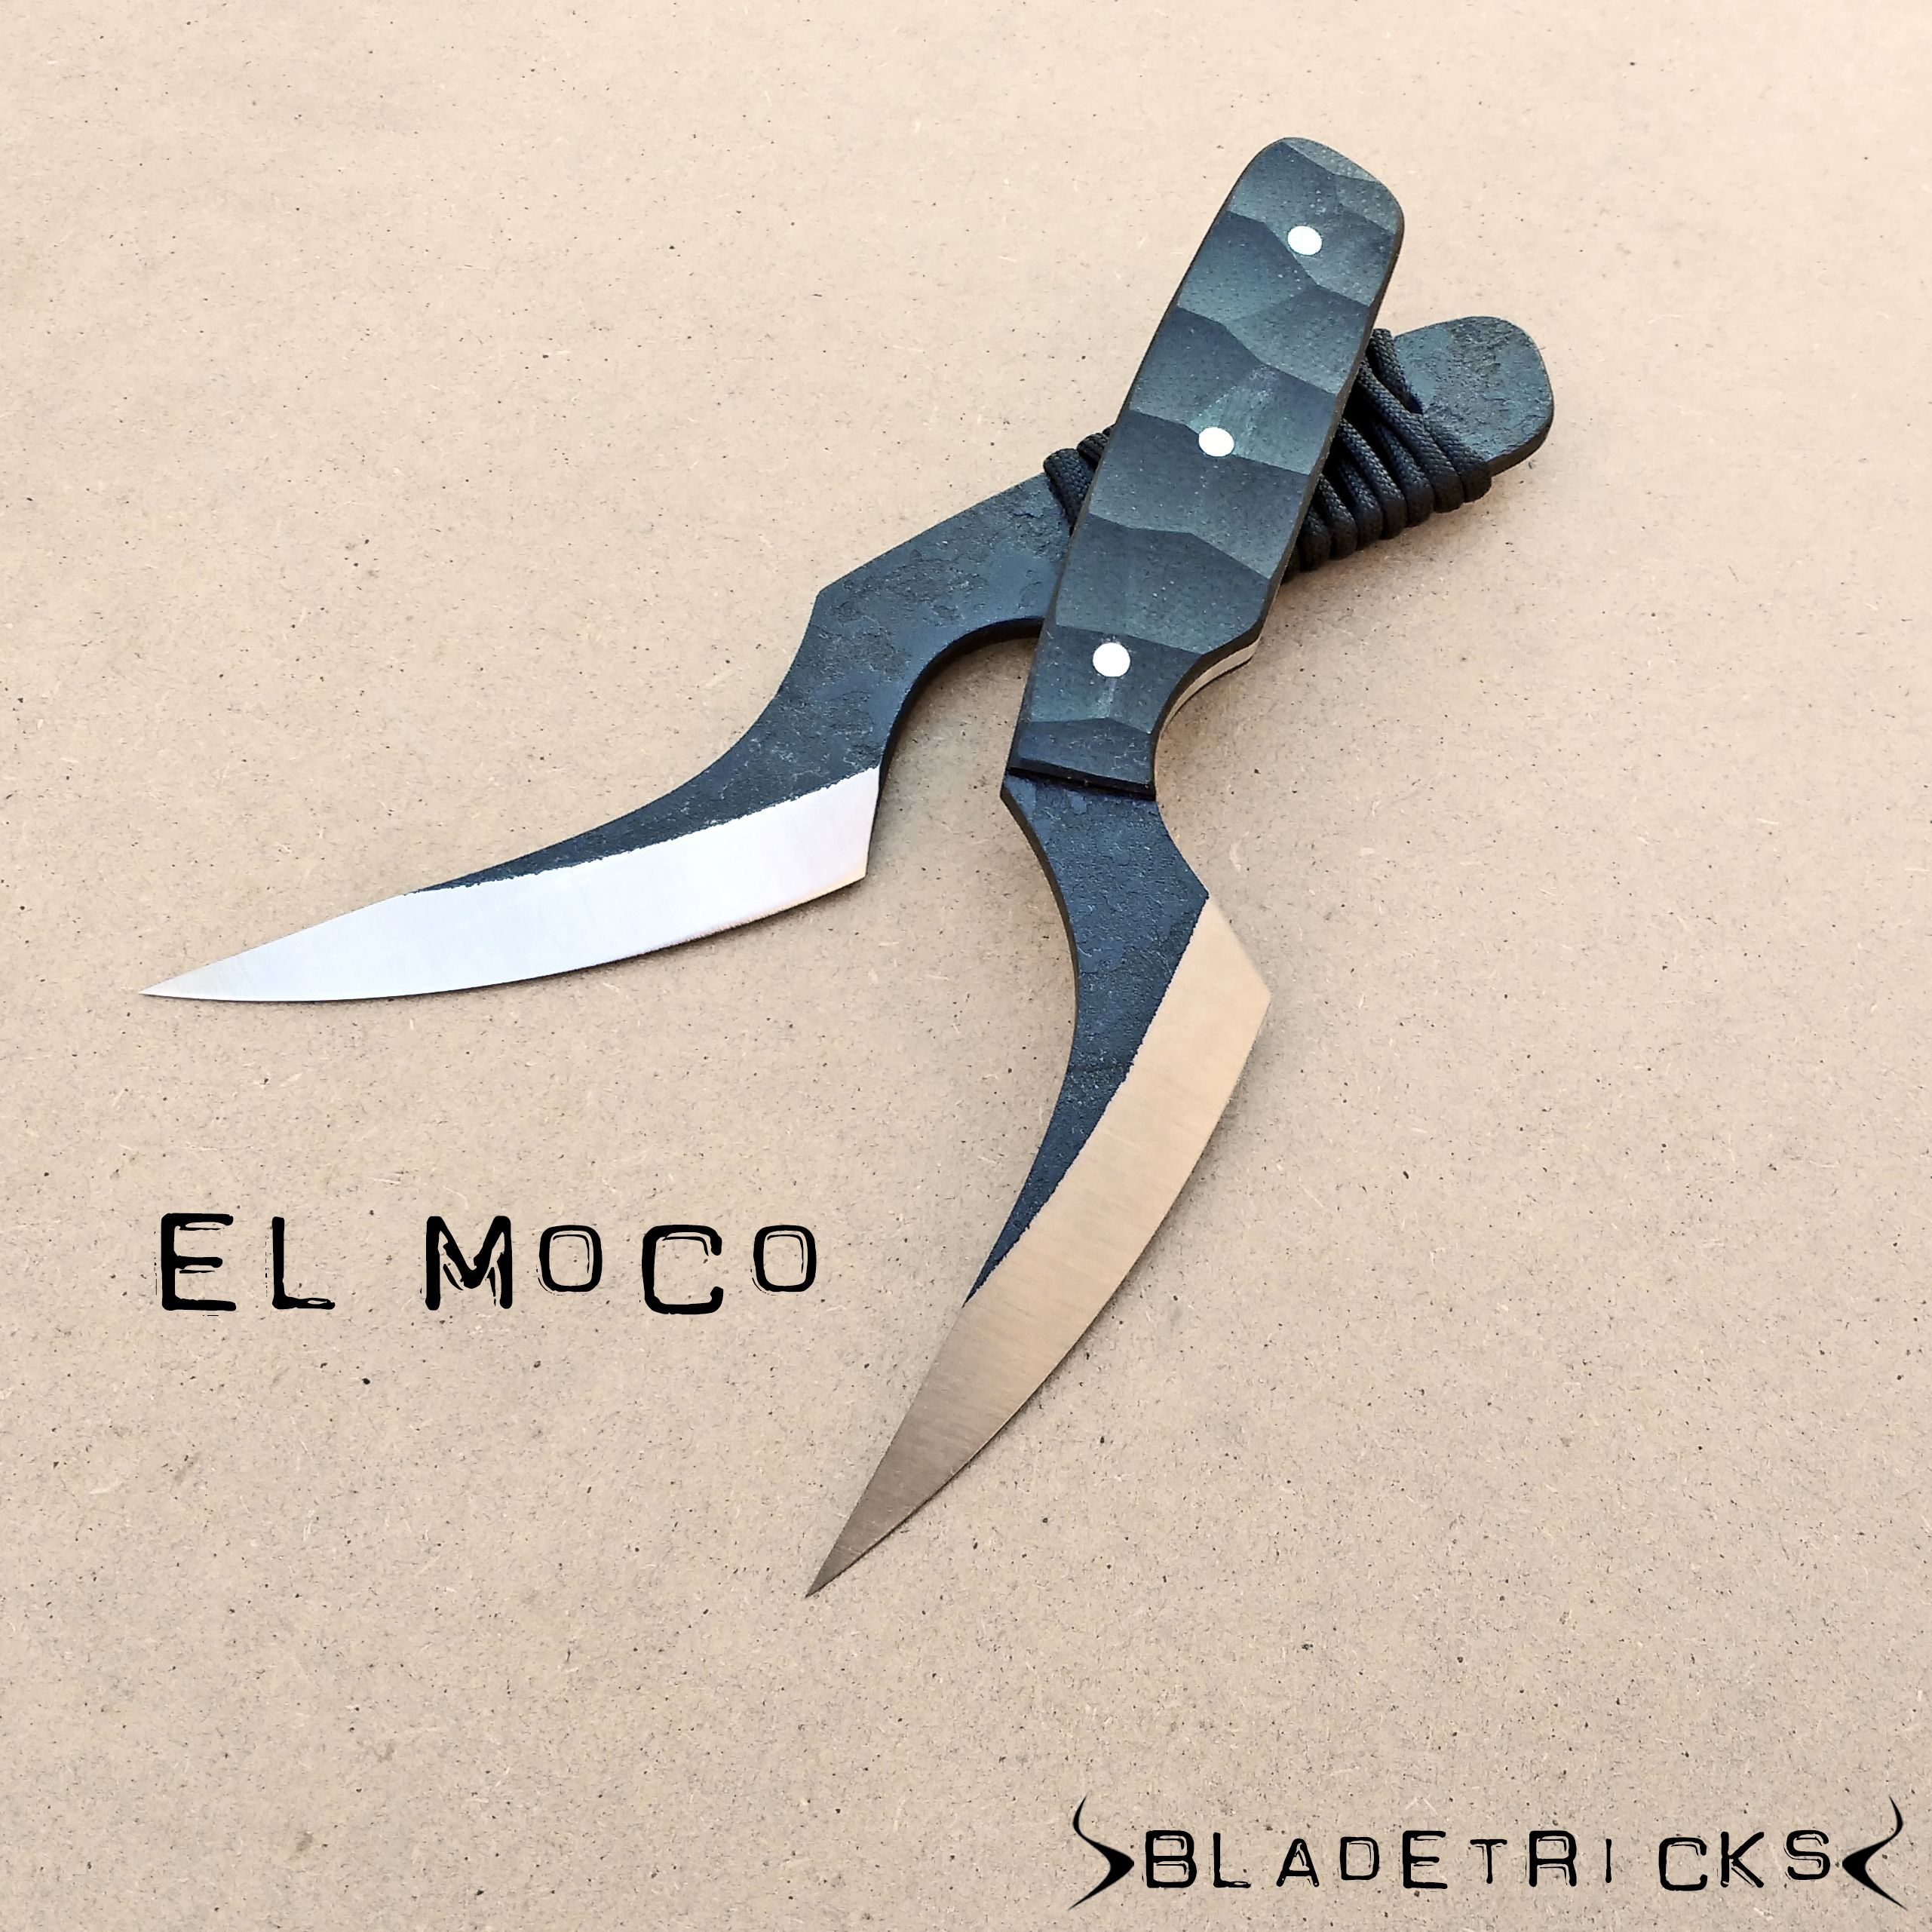 The Bladetricks Moco is a small and elegant EDC knife with a very